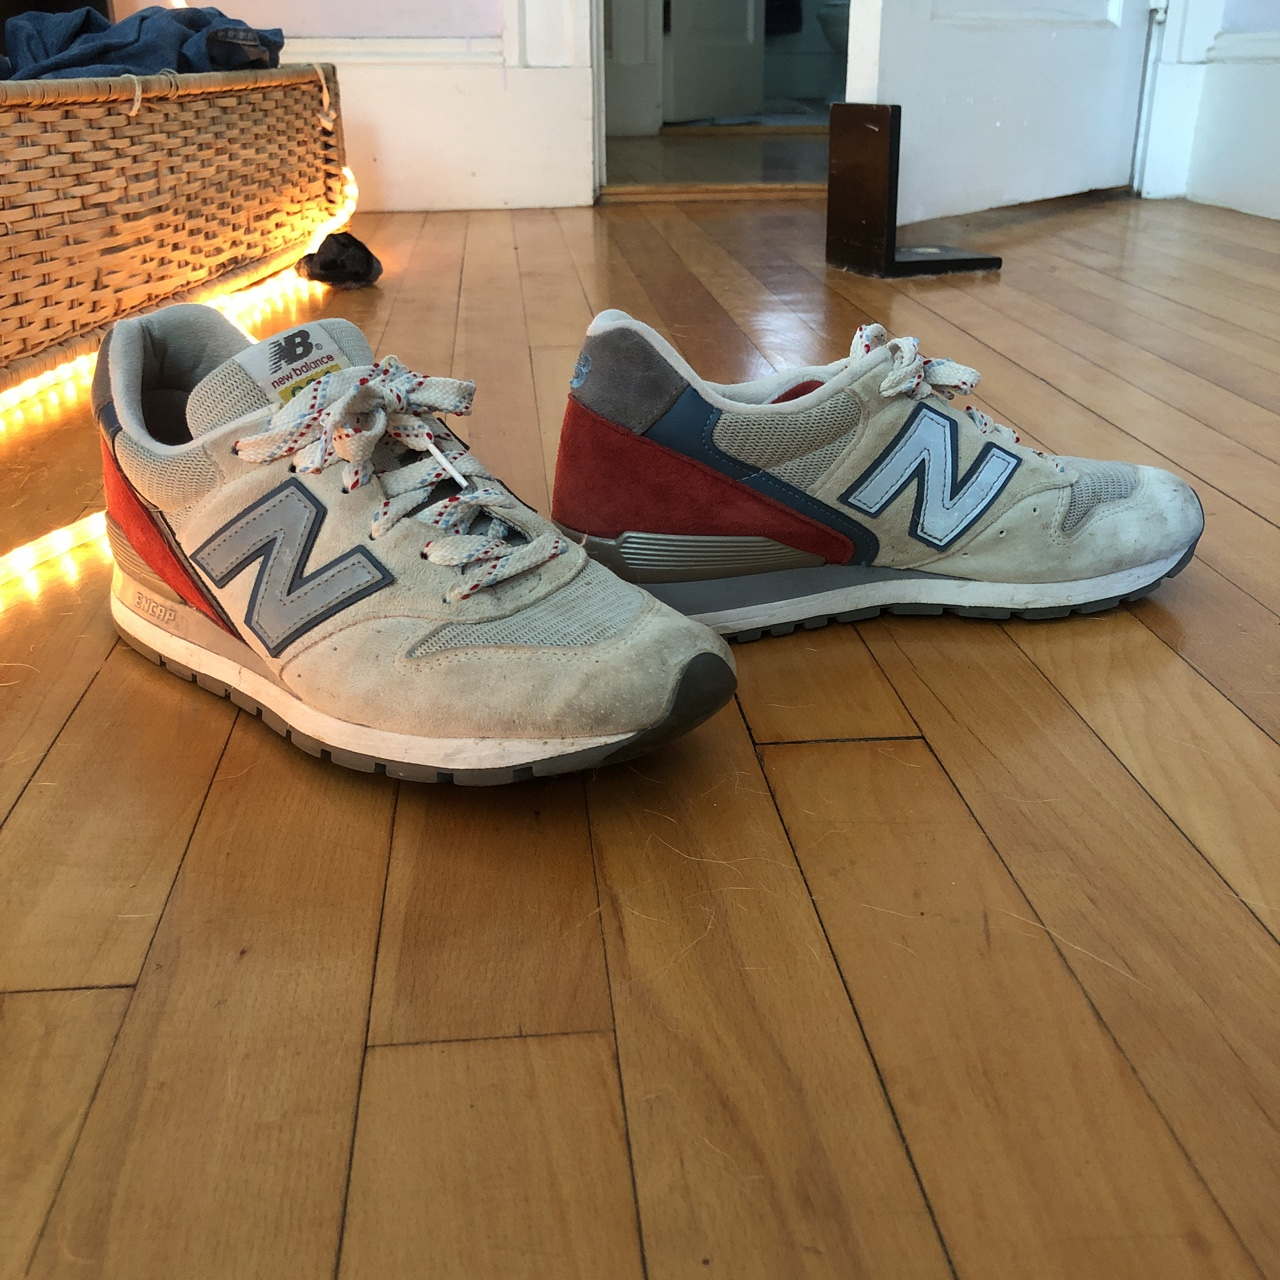 online store aa48f 9db96 new balance 996 made in USA D M996PD men's US7.5... - Depop